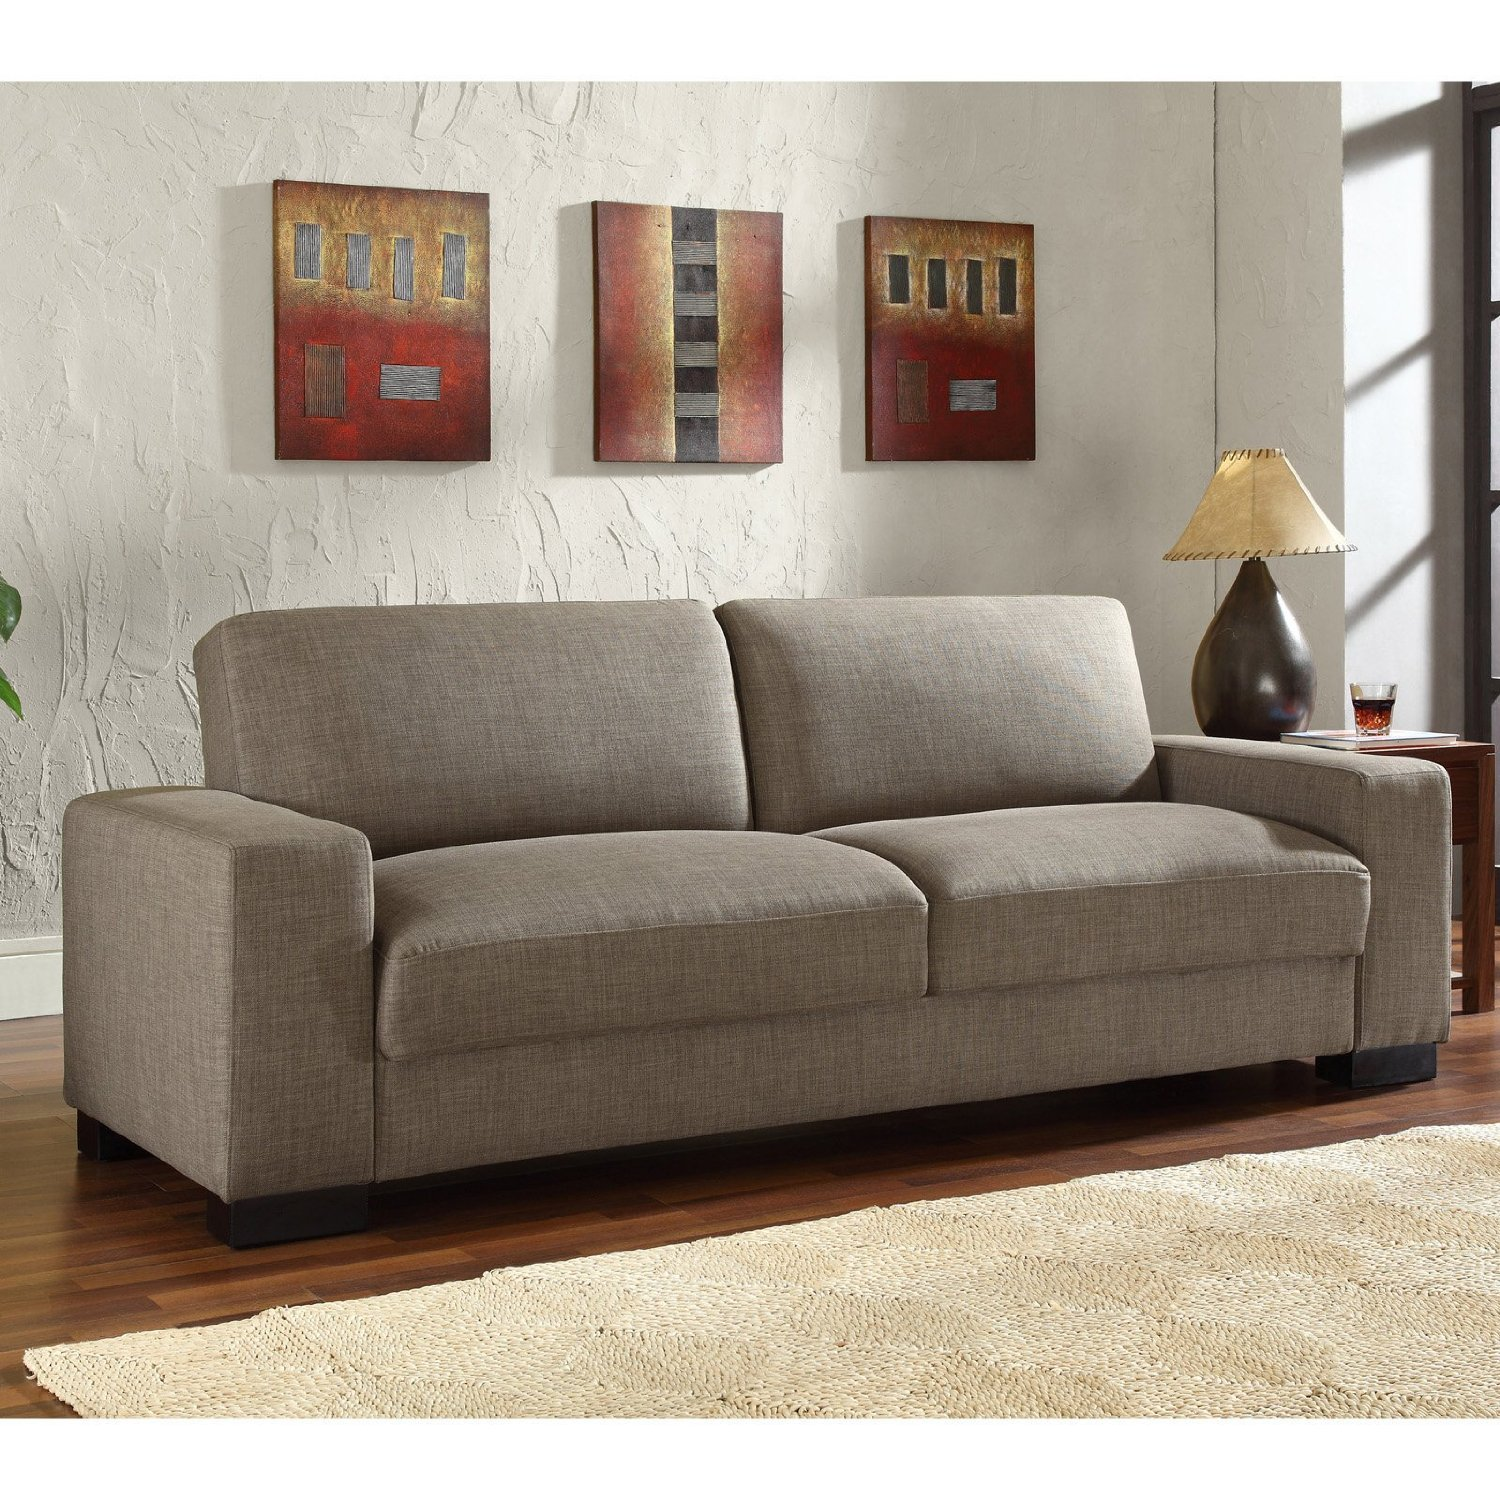 Annabel Cream Convertible Sofa Bed Futon Actually Consider The Quality Of Upholstery To See If In Case May Perhaps Be